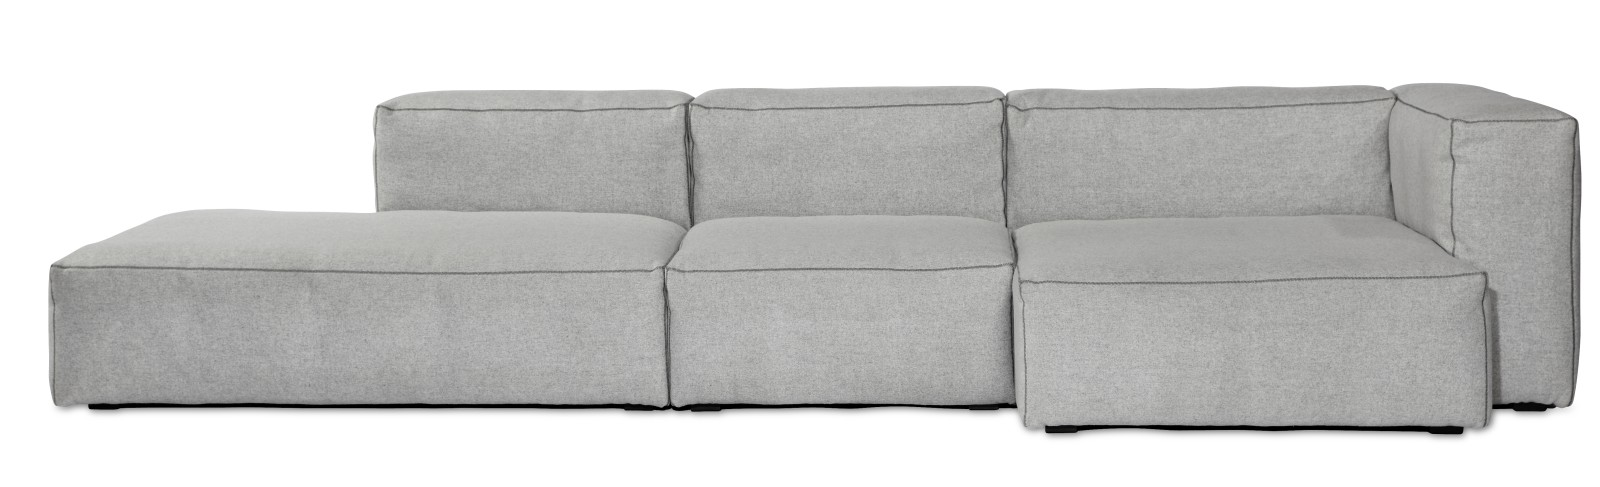 Mags Soft Chaise Lounge Short Modular Element S8261 - Right Divina Melange 2 120